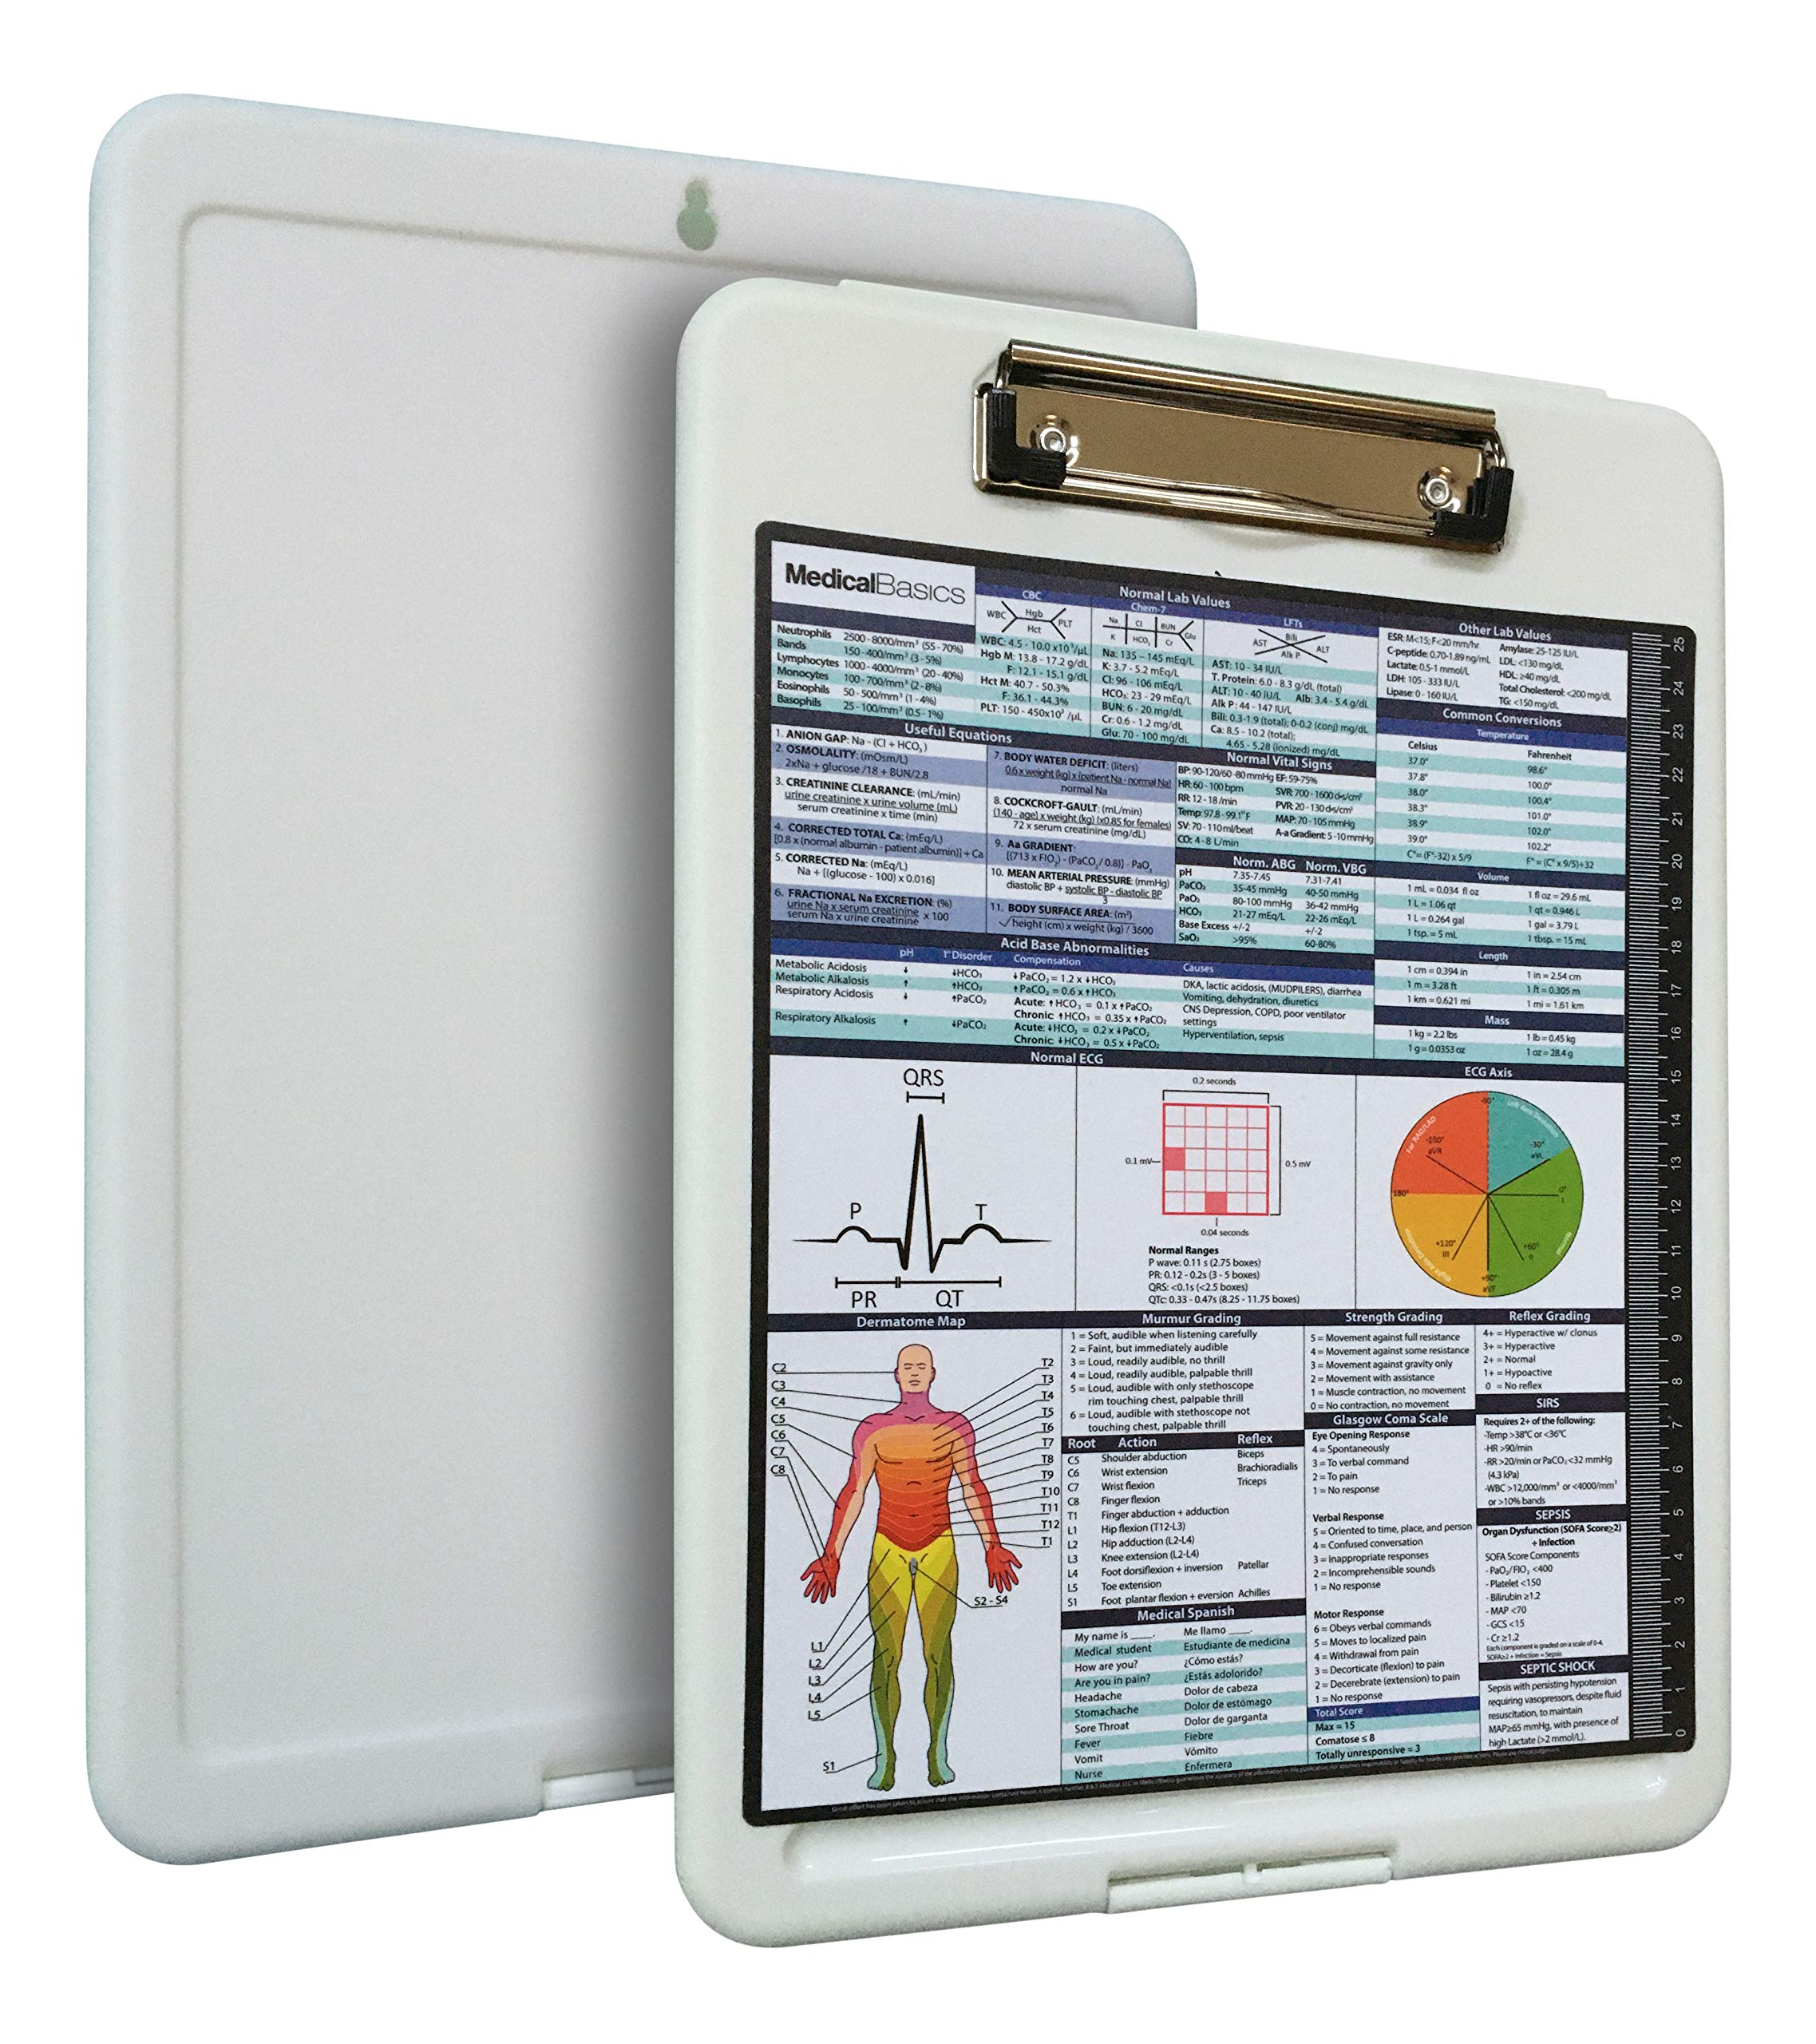 Premium Medical Storage Clipboard with Quick Medical Reference Sheet – Clipboard for Doctors, Medical Students…